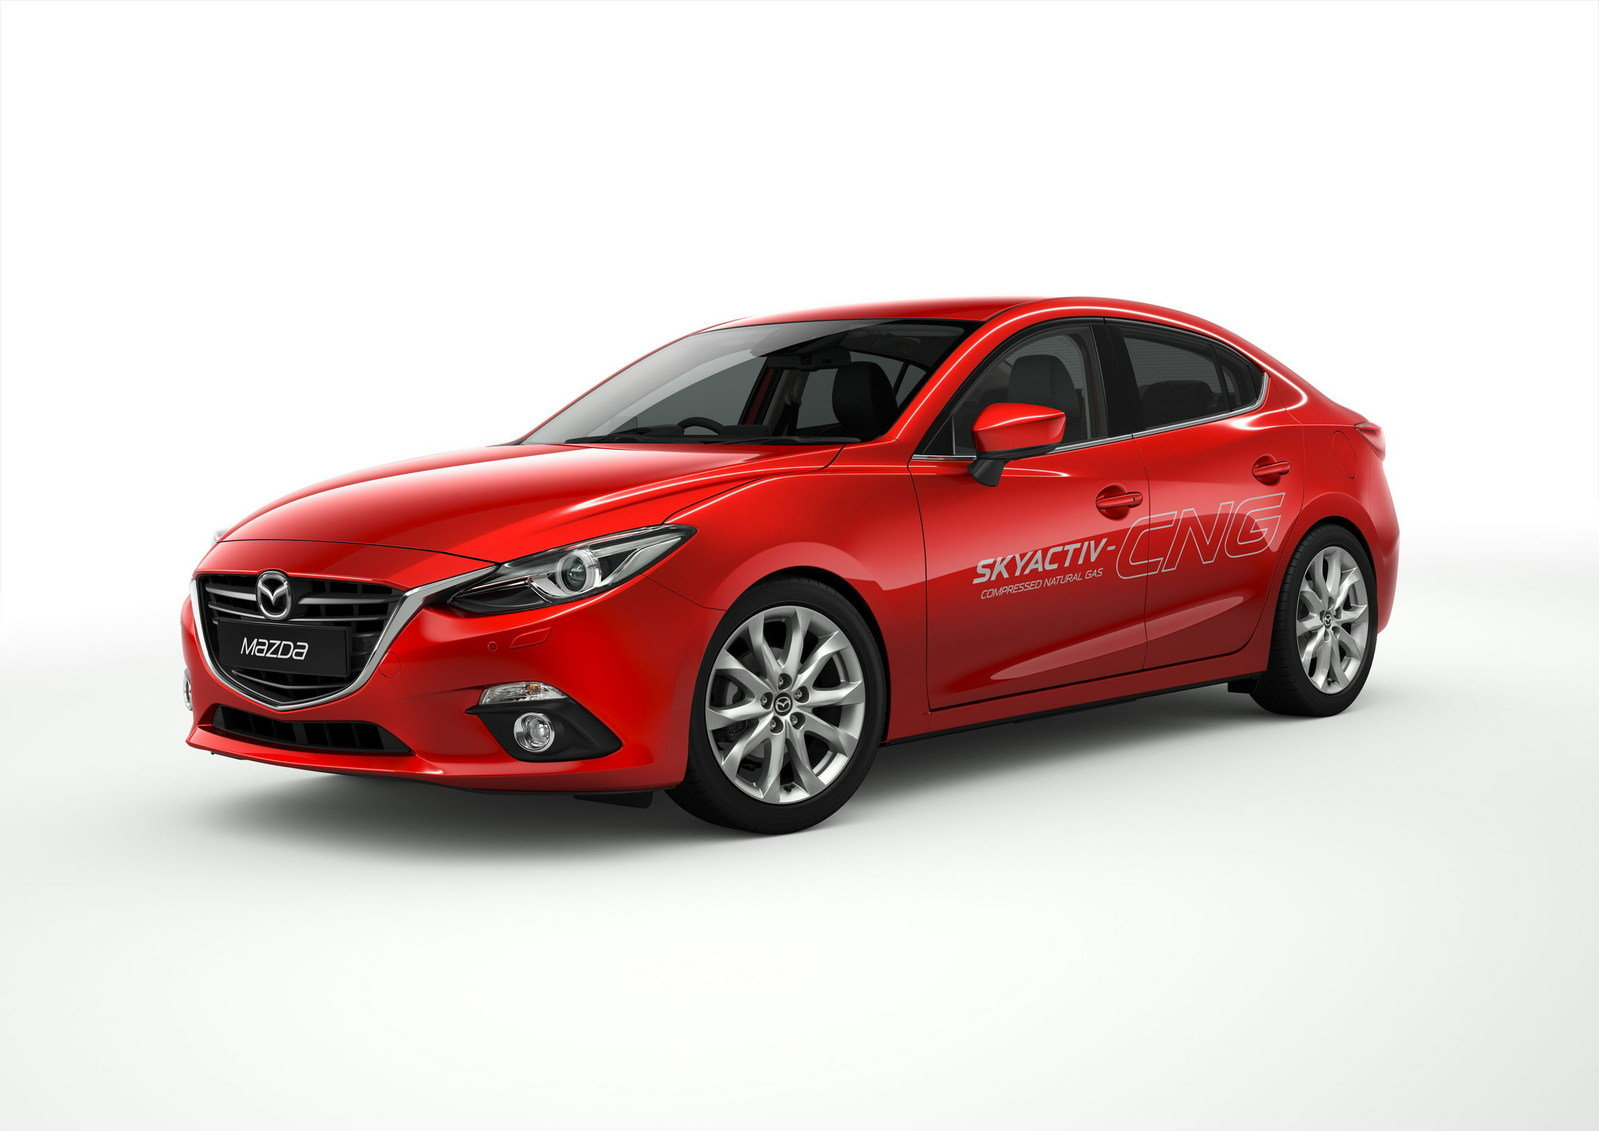 2013 mazda3 skyactiv cng concept review top speed. Black Bedroom Furniture Sets. Home Design Ideas